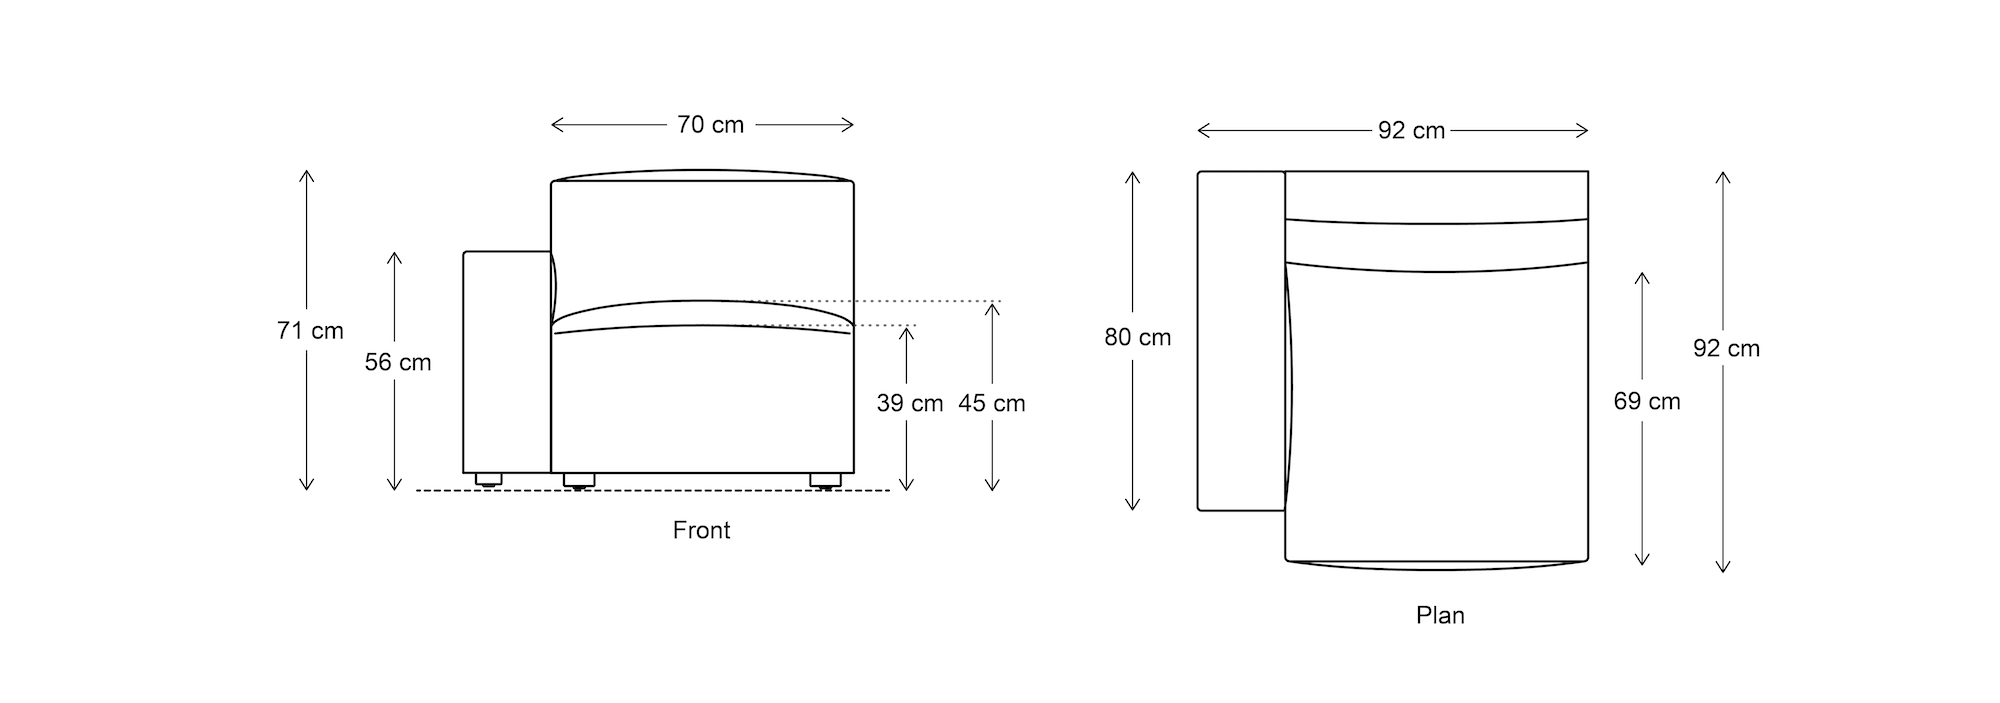 Model 03 Left Arm Dimensions Drawing